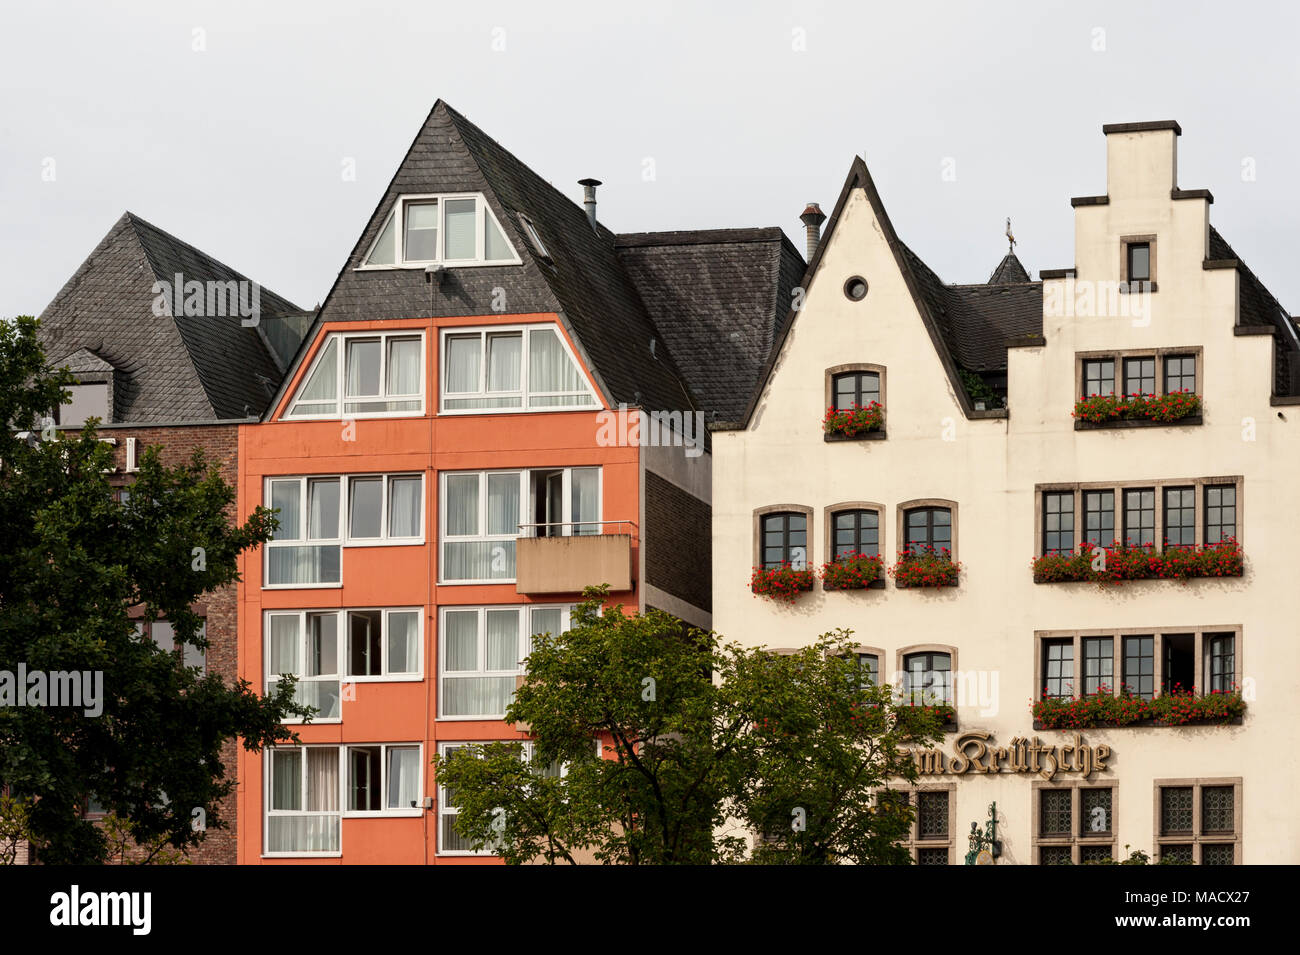 Colorful houses in Bavarian style in the old town of Cologne, North Rhine-Westphalia - Germany Stock Photo